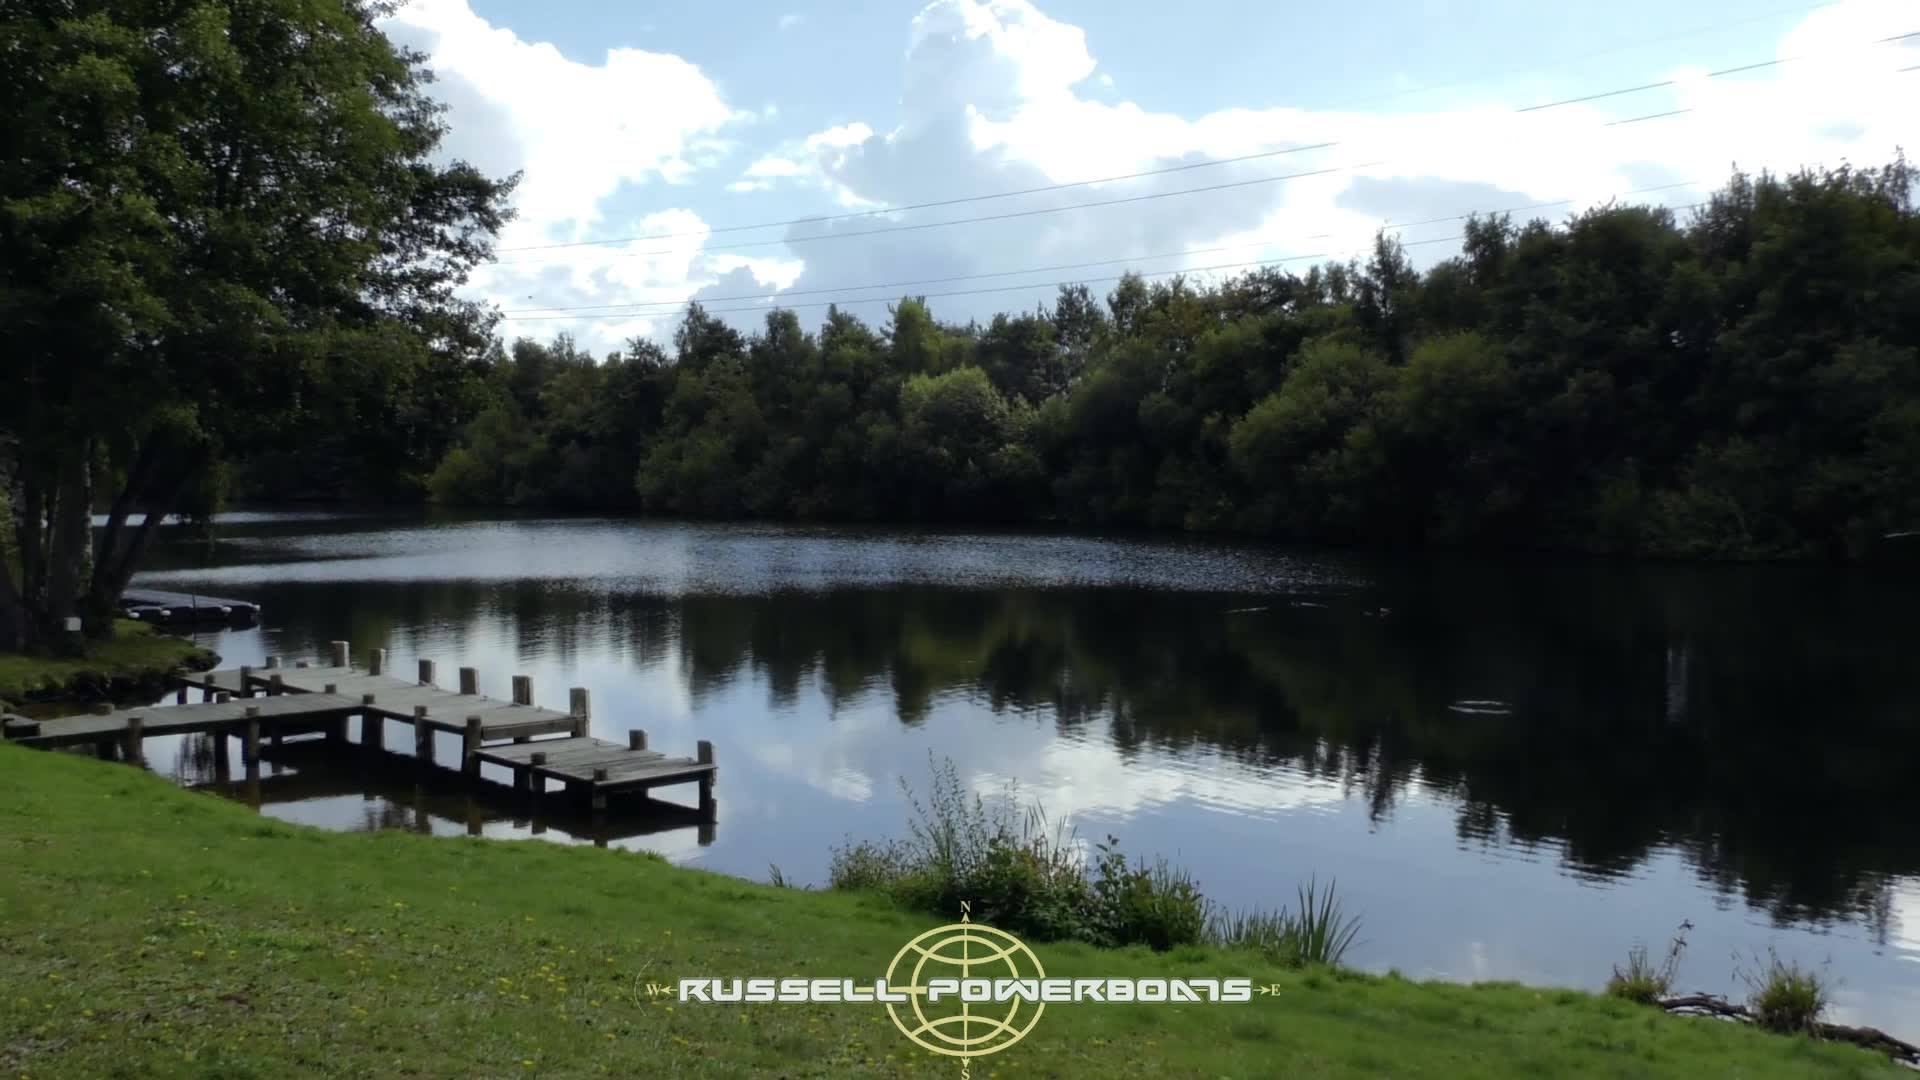 September 2017 - Russell Powerboats